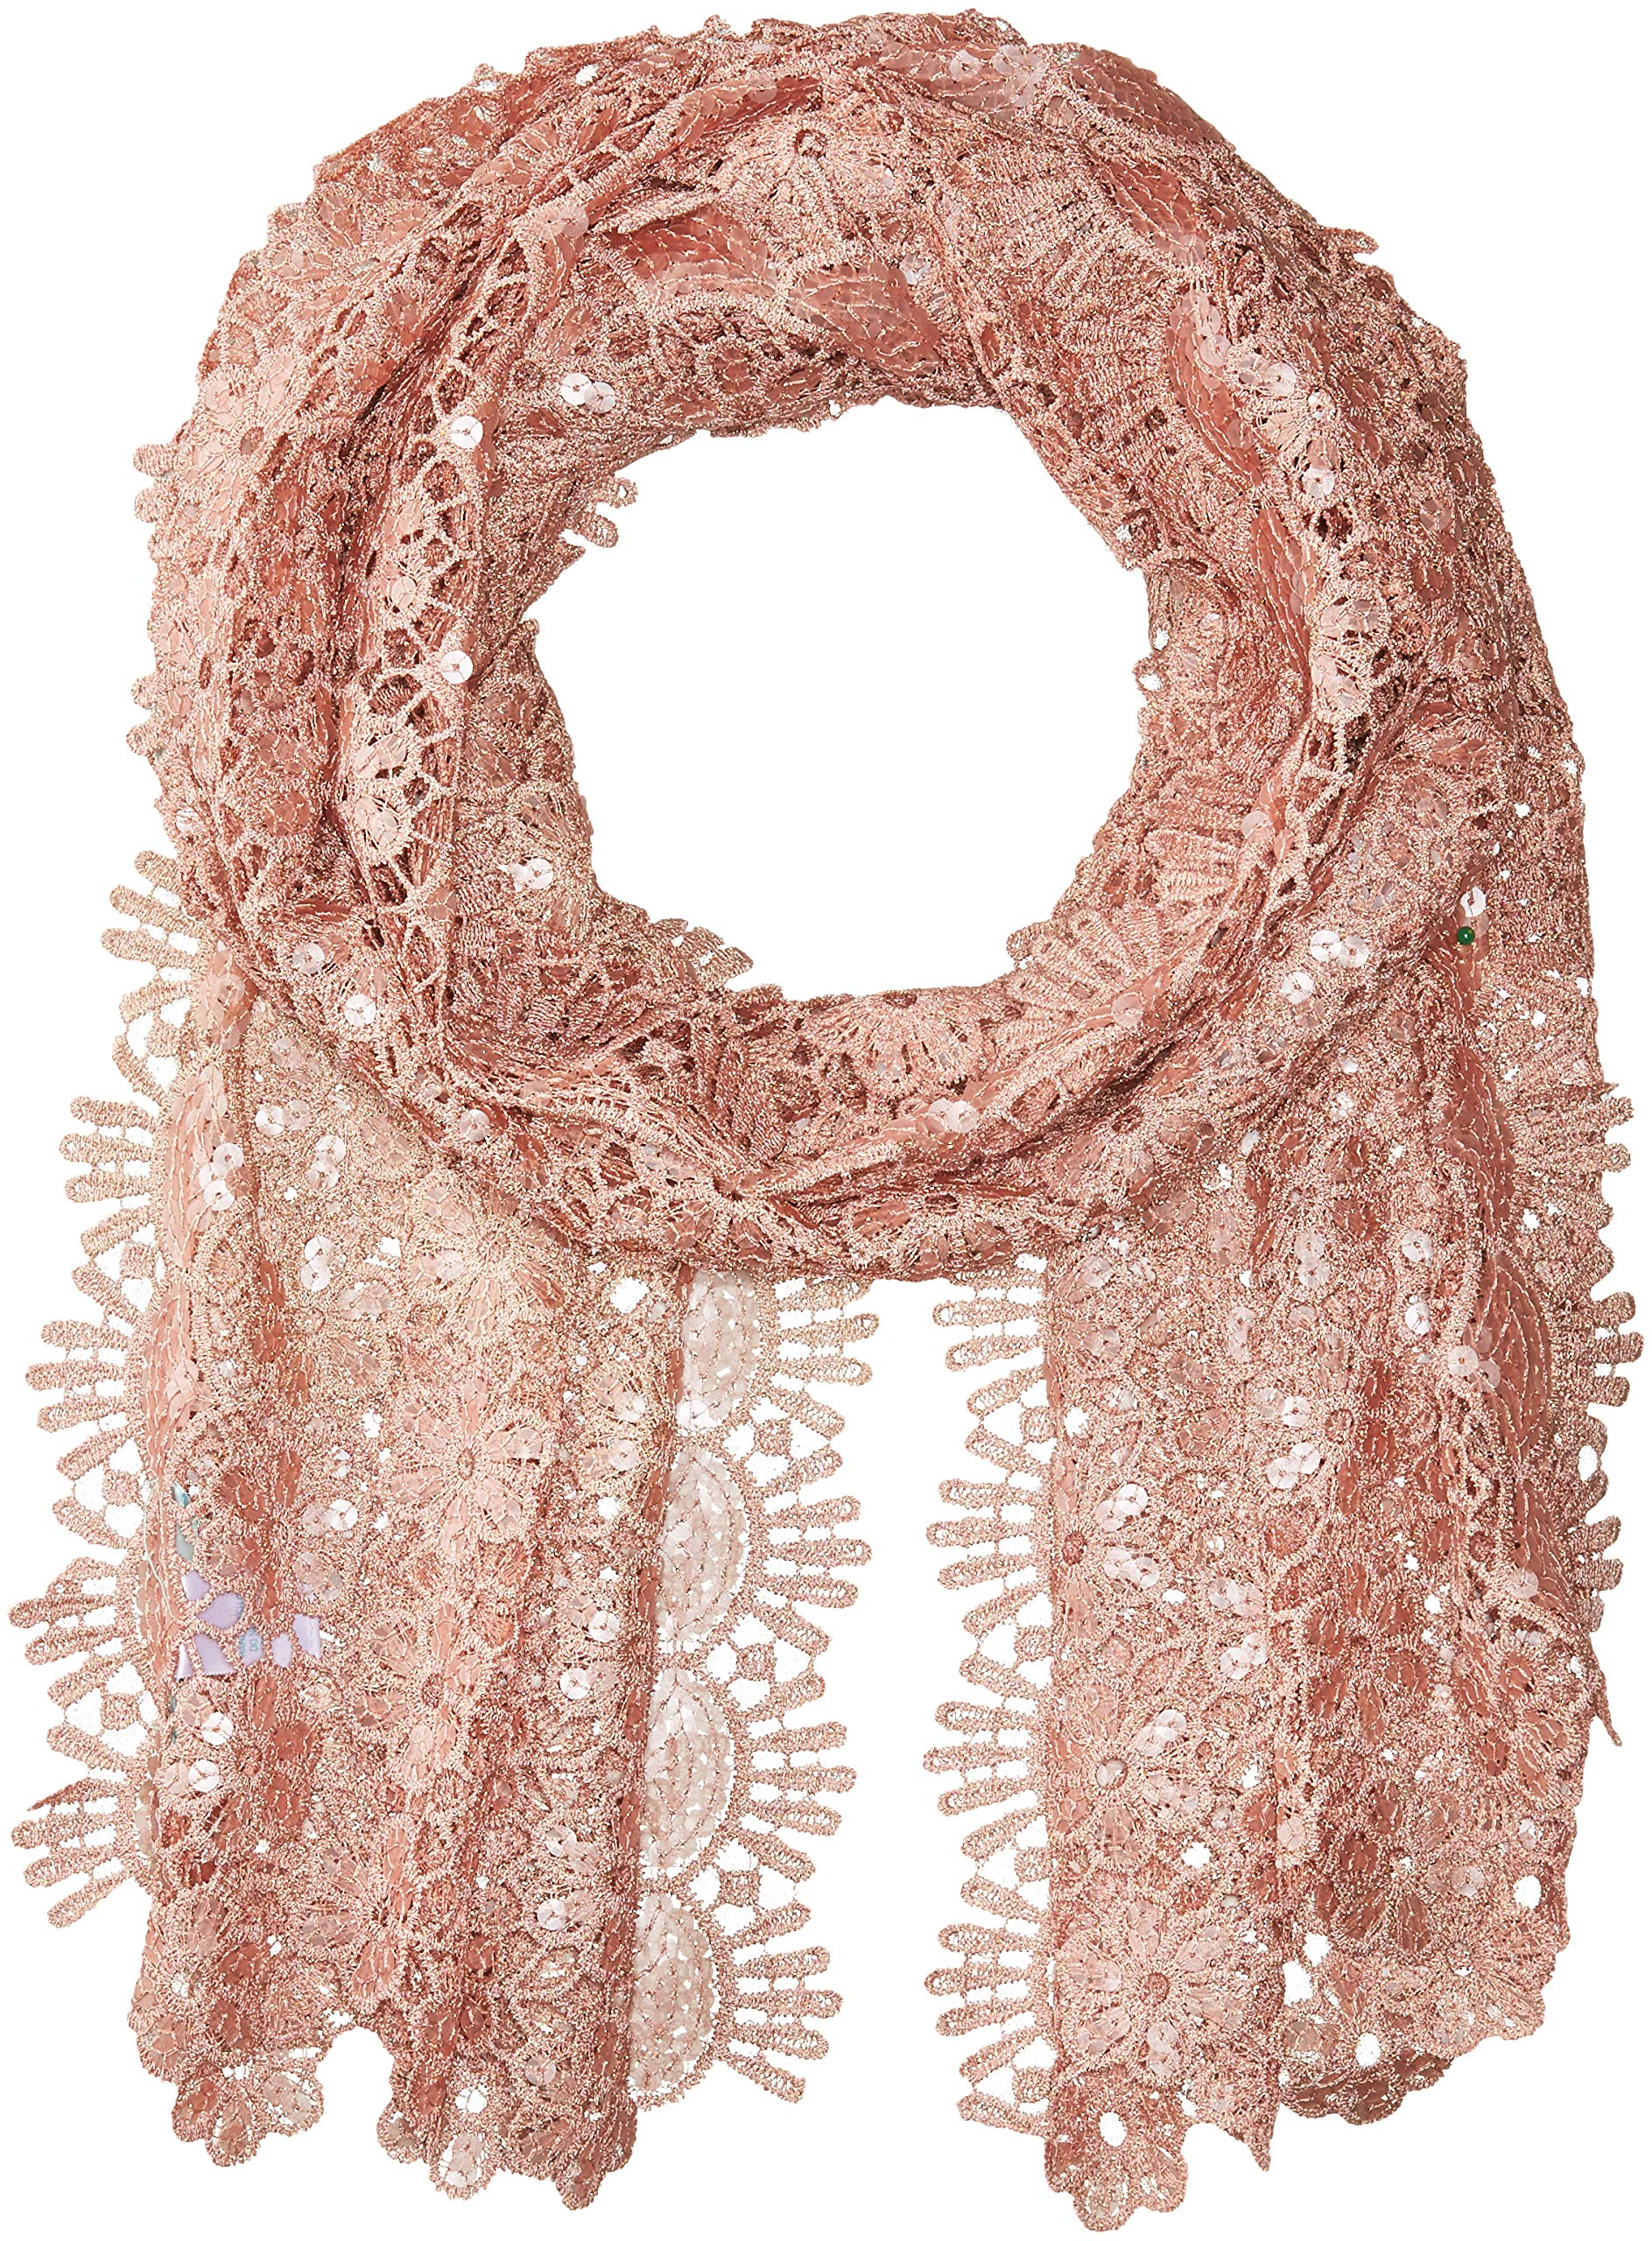 Betsey Johnson Women's Sequin Scallped Edge Crochet Evening Wrap, Blush, one Size by Betsey Johnson